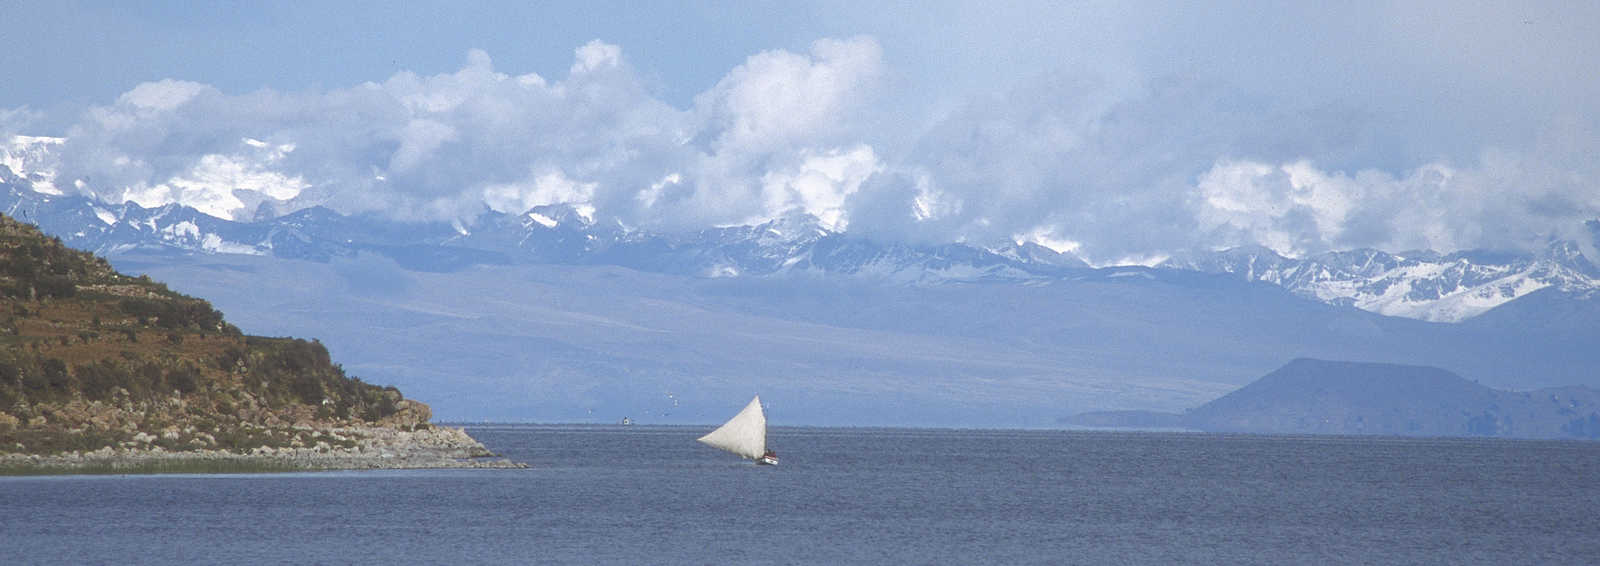 Sailboat by Island of Sun, Lake Titicaca. Cordillera Real behind.